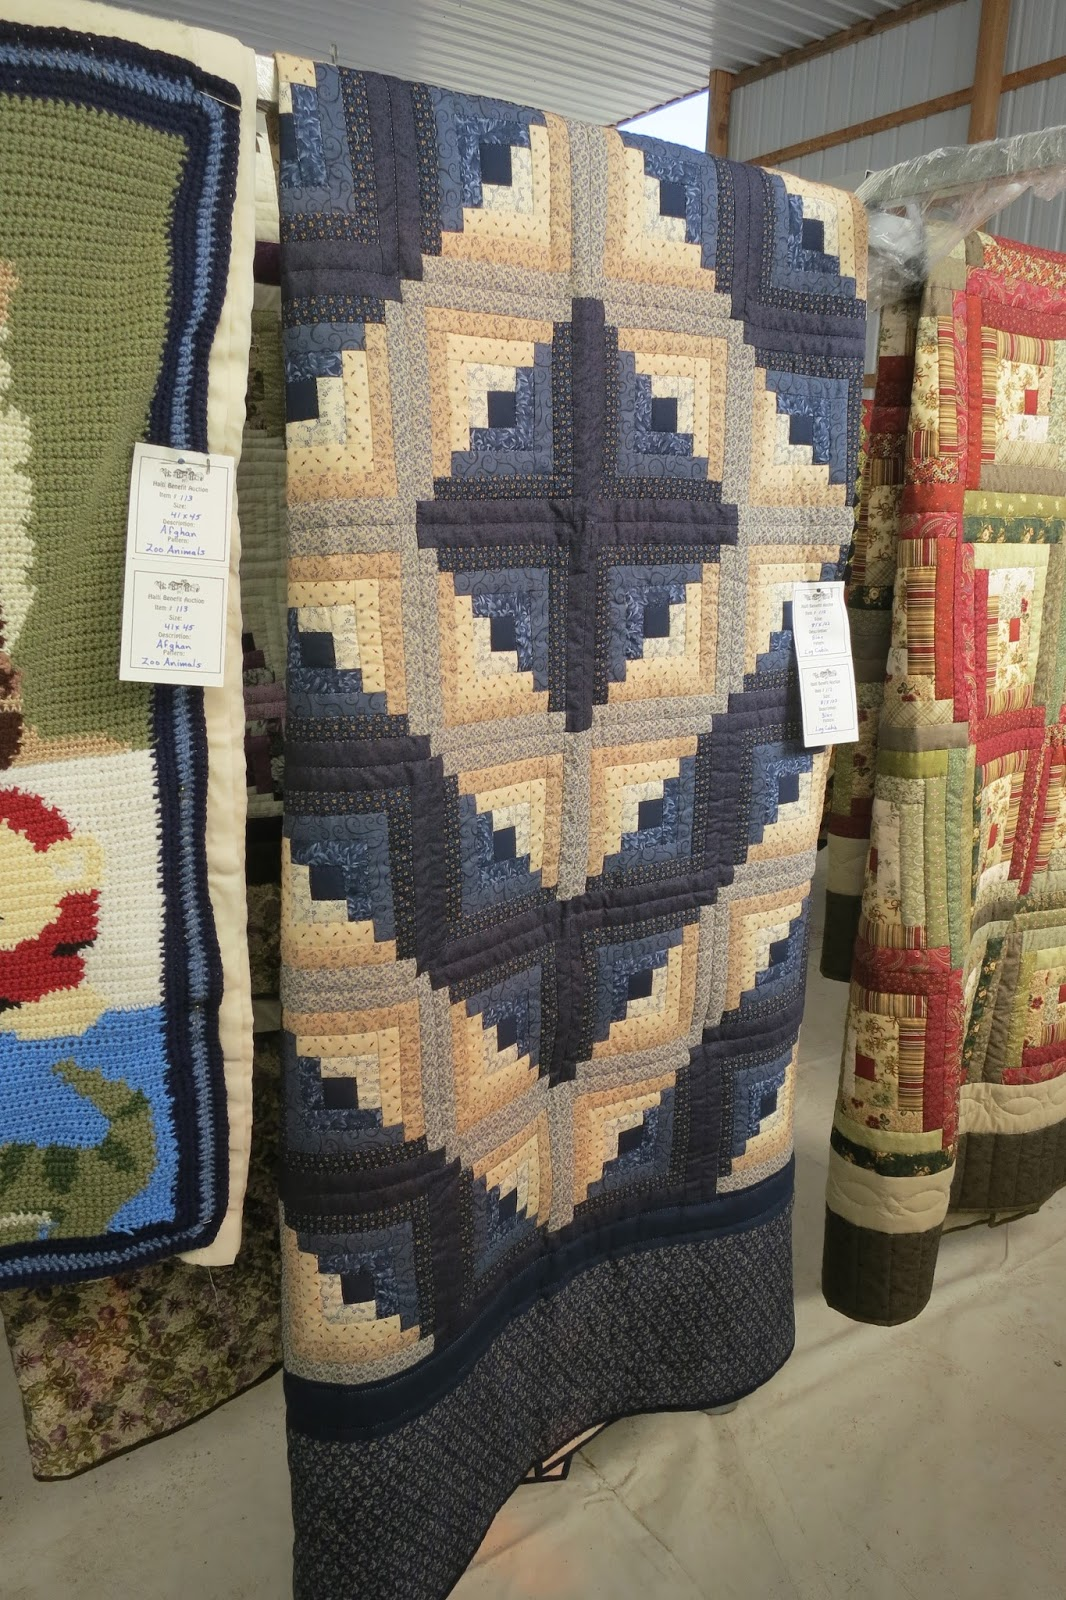 quit barn linens free cabins quilt brands tea by vhc country retro available cabin quiltedbedding swatches products